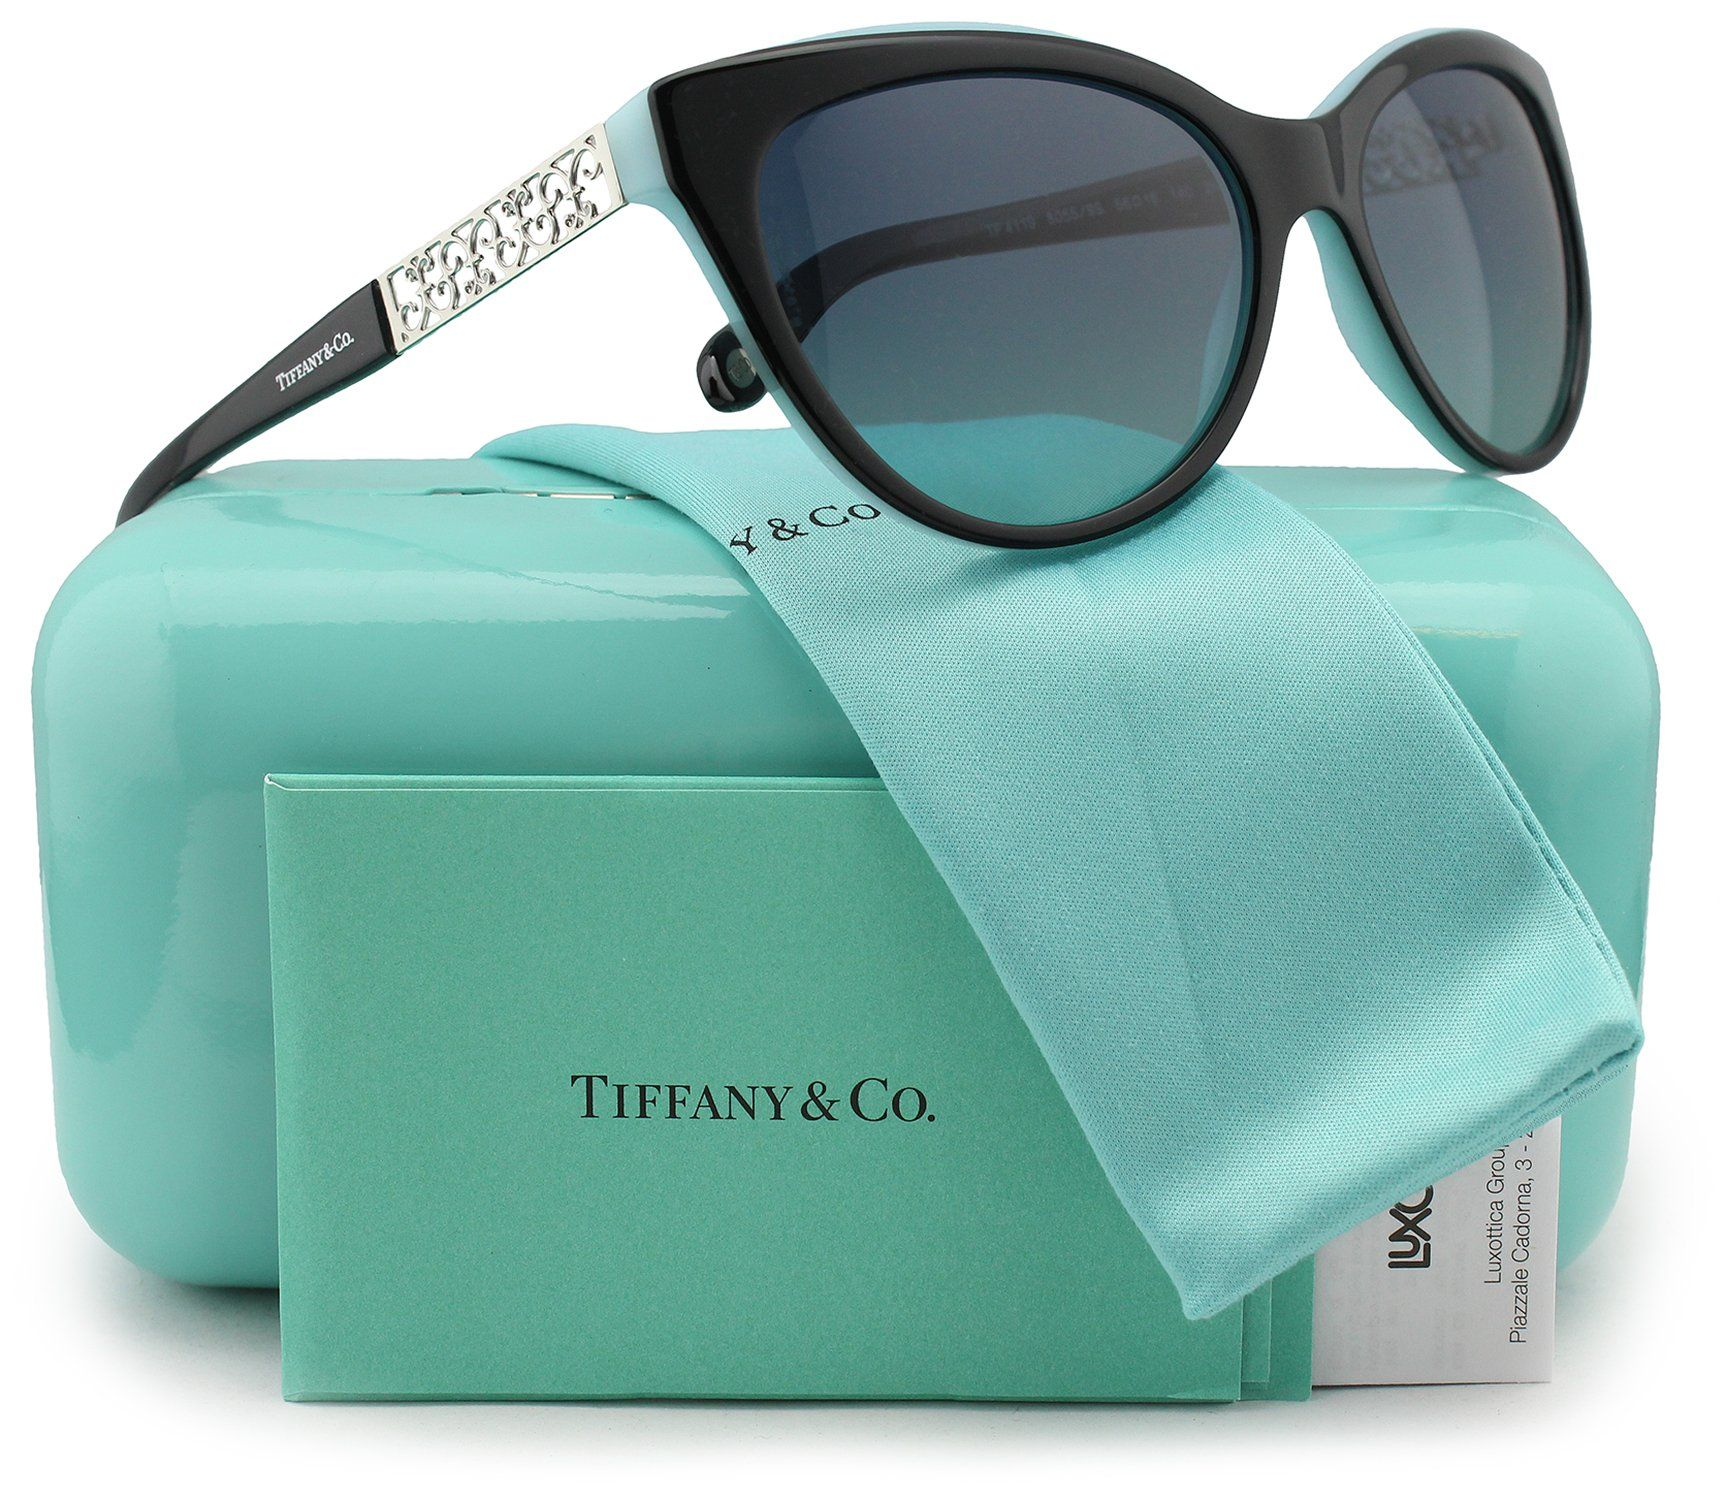 tiffany co tf4119 sunglasses blackblue wblue gradient 8055 color codestiffany - Tiffany And Co Color Code